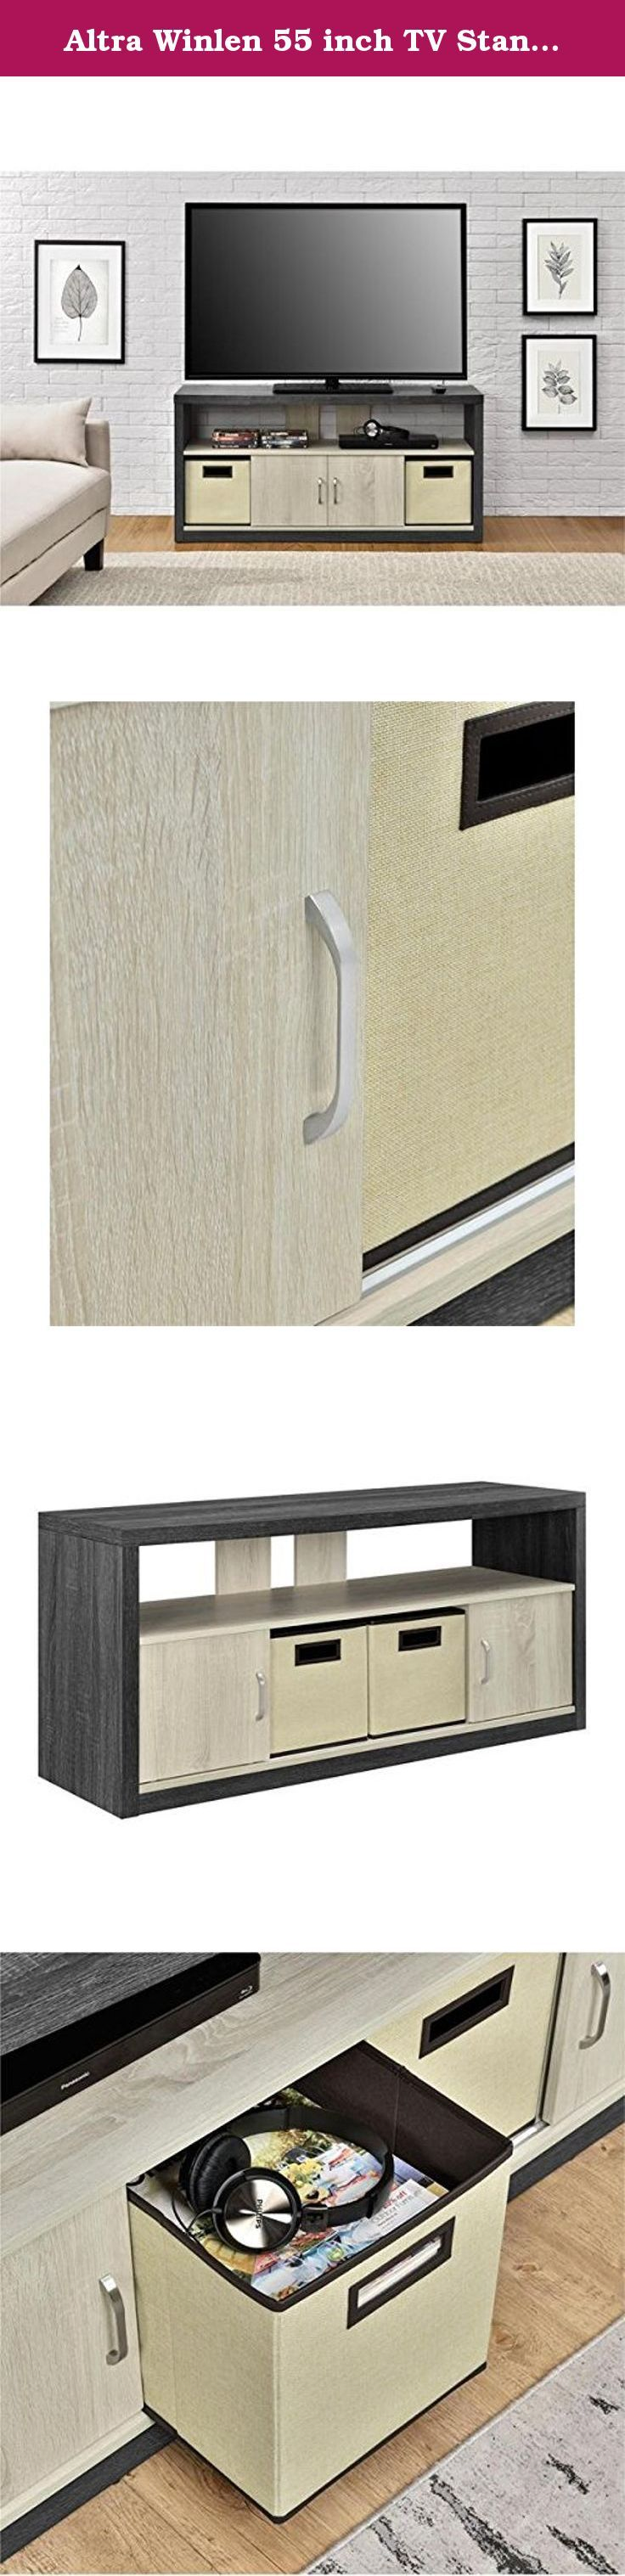 Altra Winlen 55 inch TV Stand with 2 Fabric Bins. Update your living room with the beautiful two-tone Winlen TV Stand with 2 Fabric Bins. It's not only a great looking piece, but it is also very functional with both open and closed storage for all your entertainment needs. The thick outer frame is a dark brown espresso while the inner shelves and sliding doors are a light brown oak giving this contemporary TV Stand a fresh look. The large top surface is curved, providing even more space…